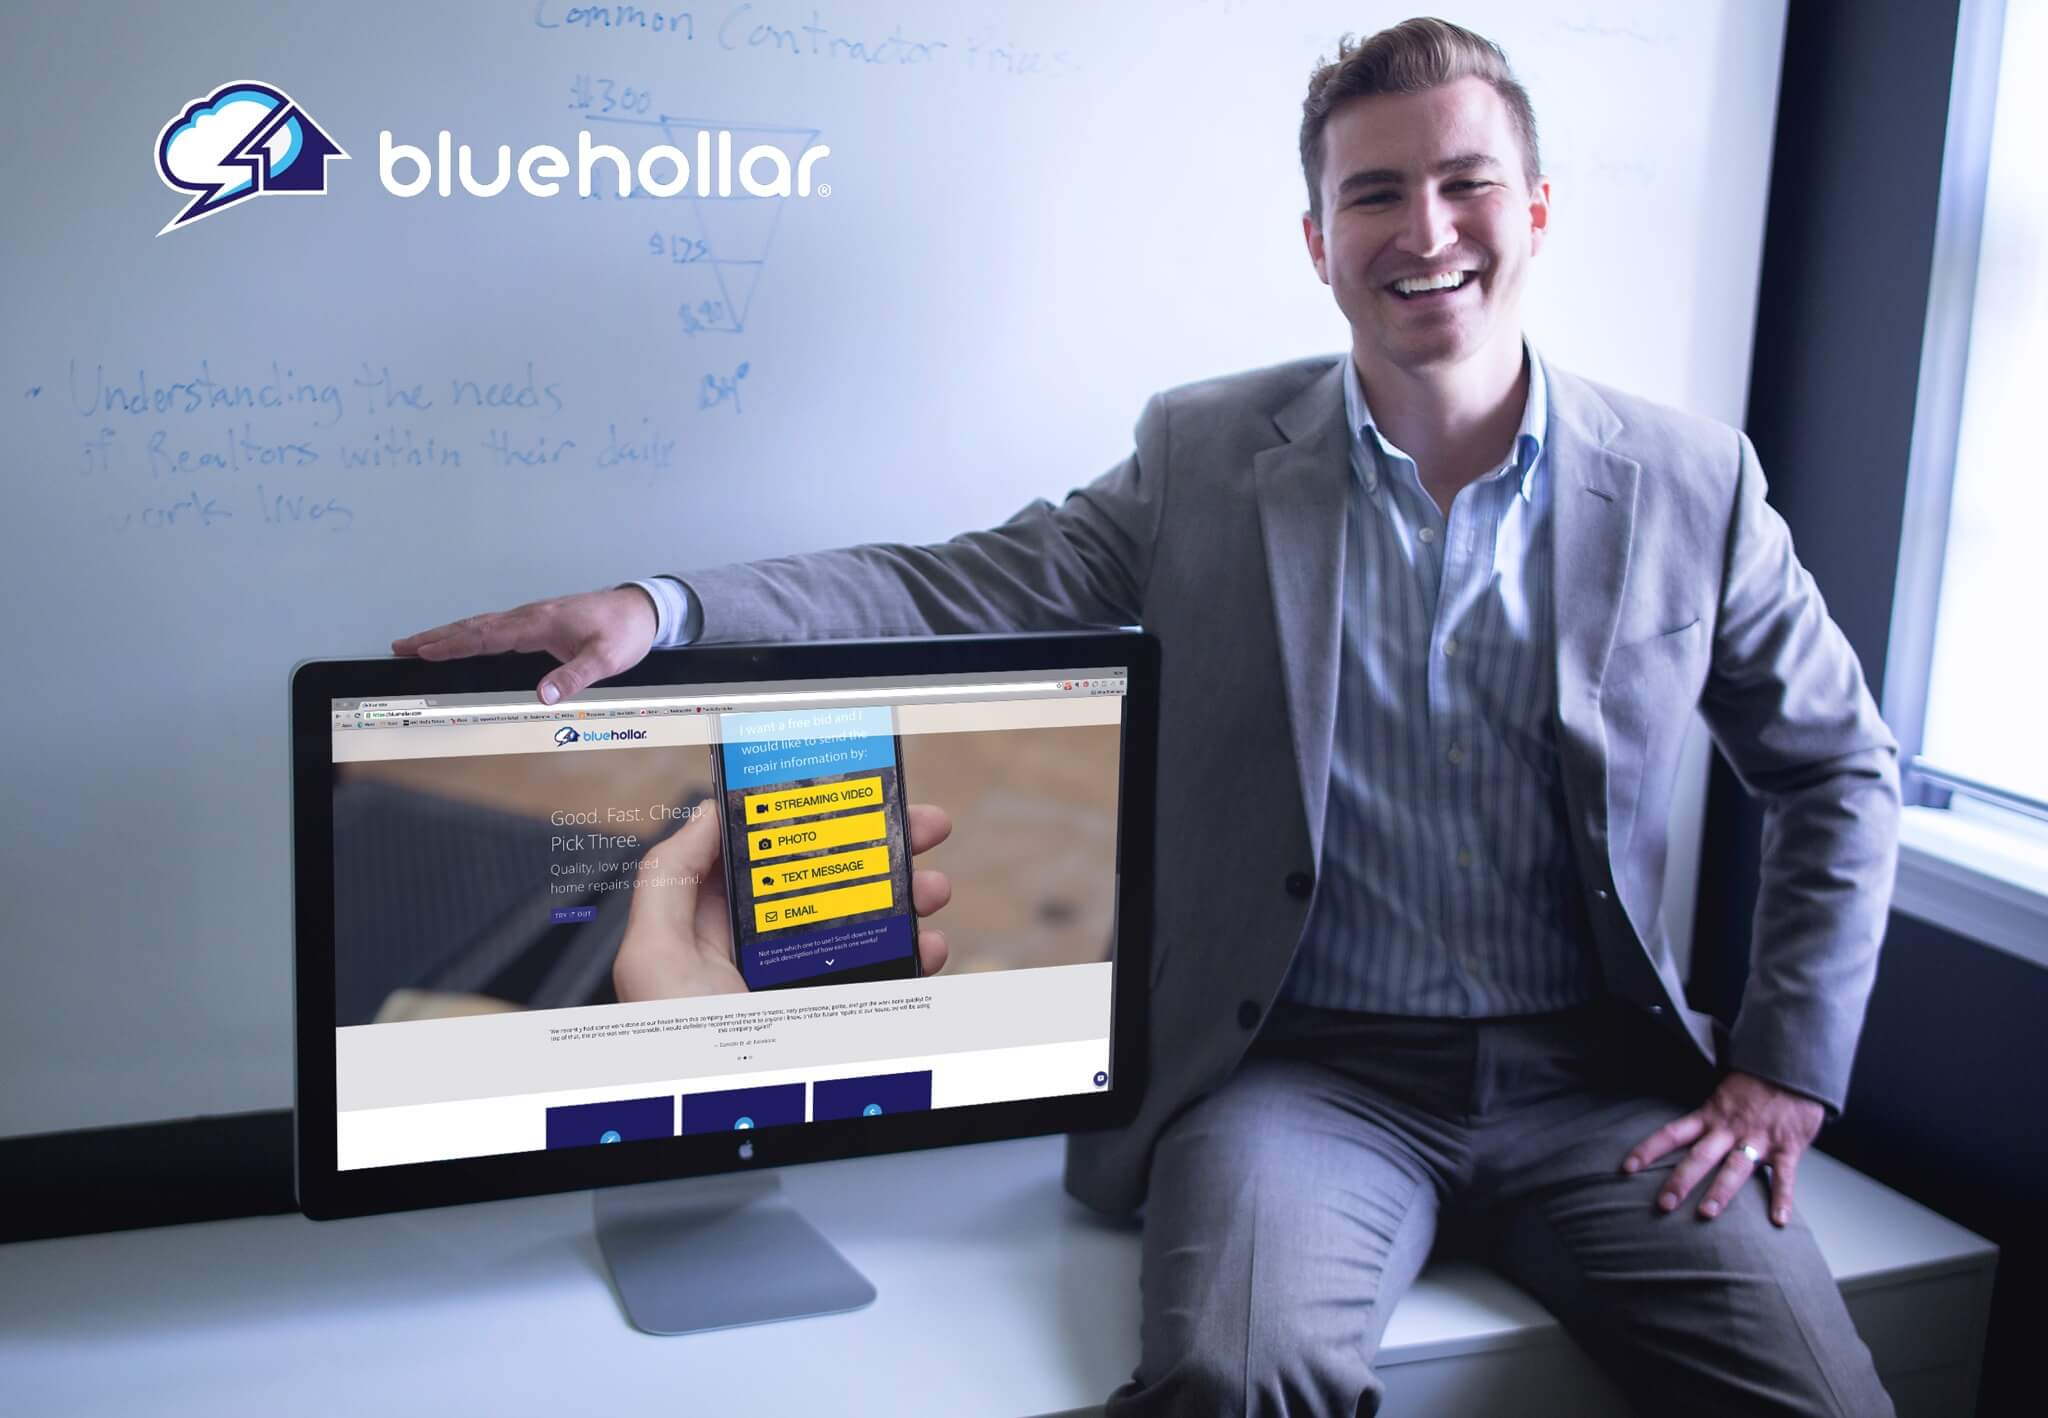 Kalen Barker, founder of BlueHollar